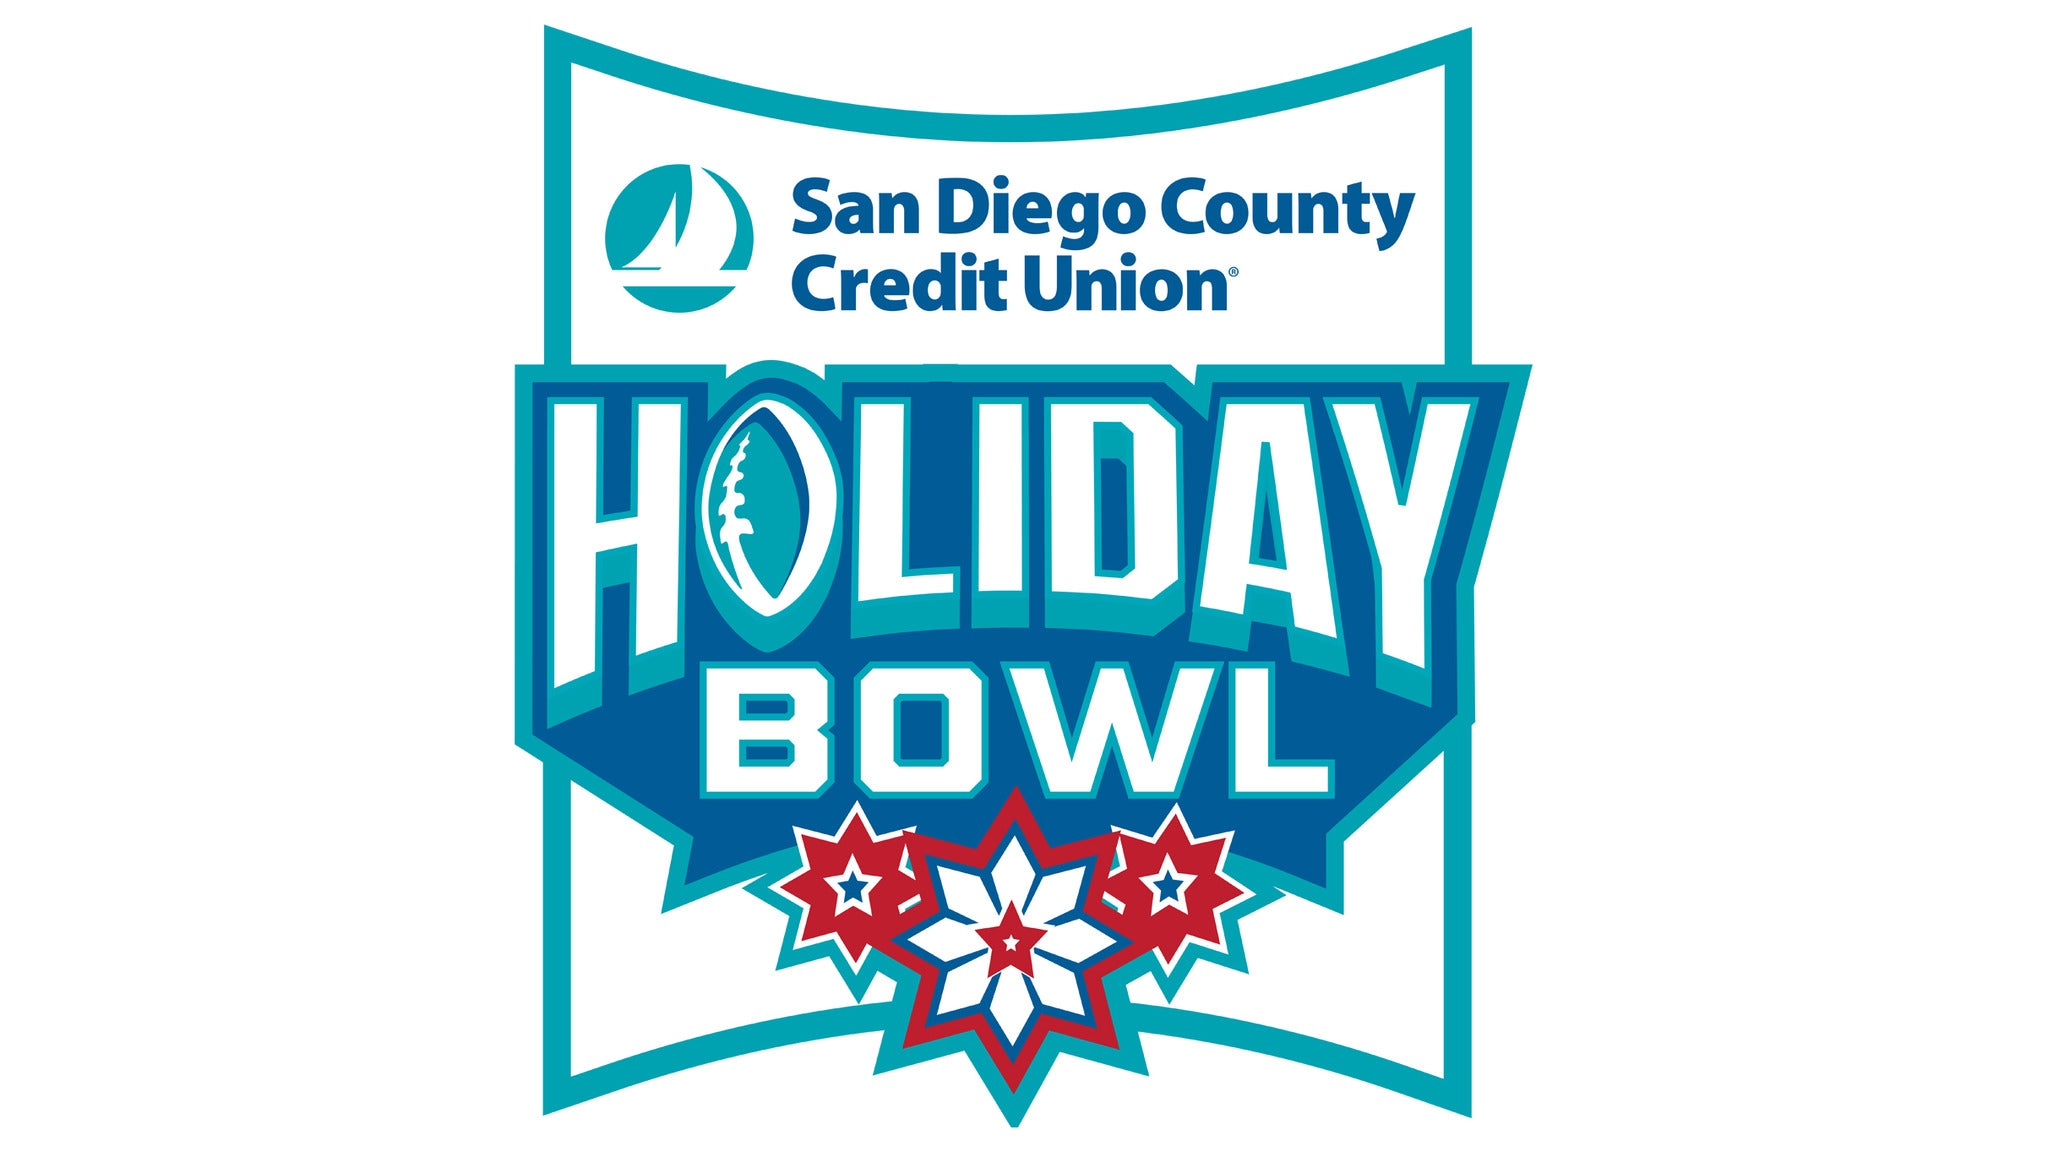 presale password for San Diego County Credit Union Holiday Bowl tickets in San Diego - CA (Petco Park)